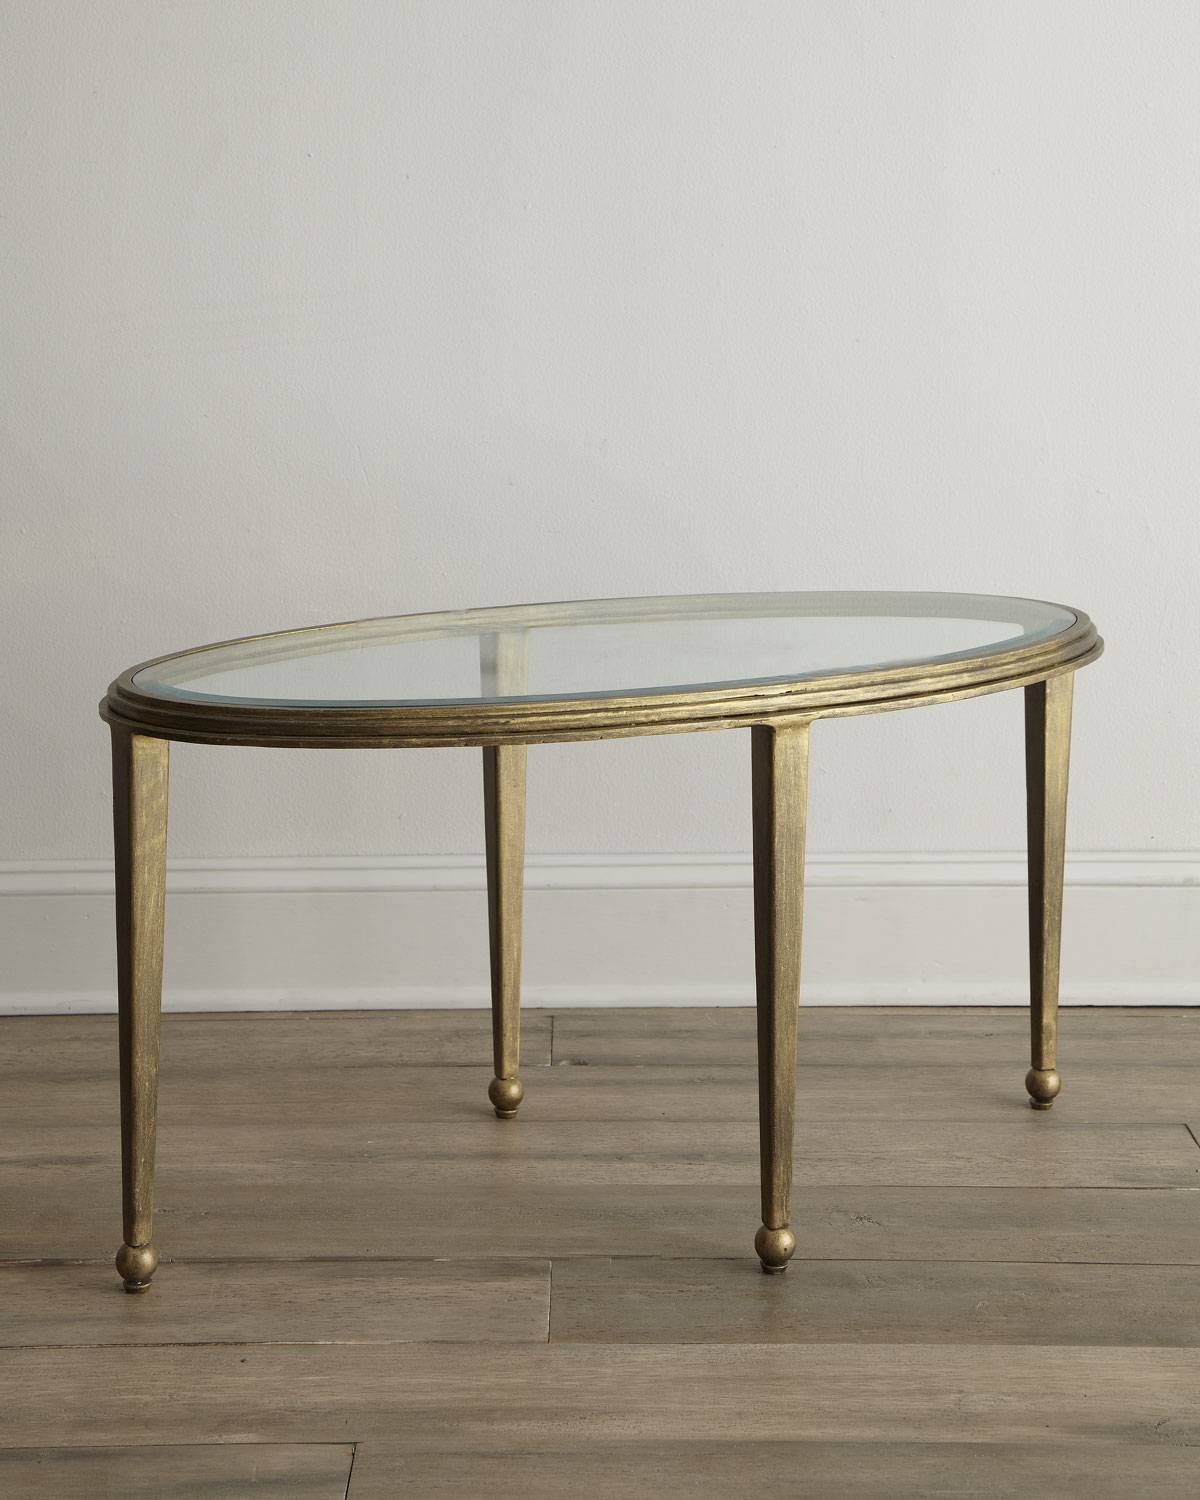 Design Of Oval Glass Coffee Table With Coffee Tables Design Small inside Small Glass Coffee Tables (Image 7 of 15)